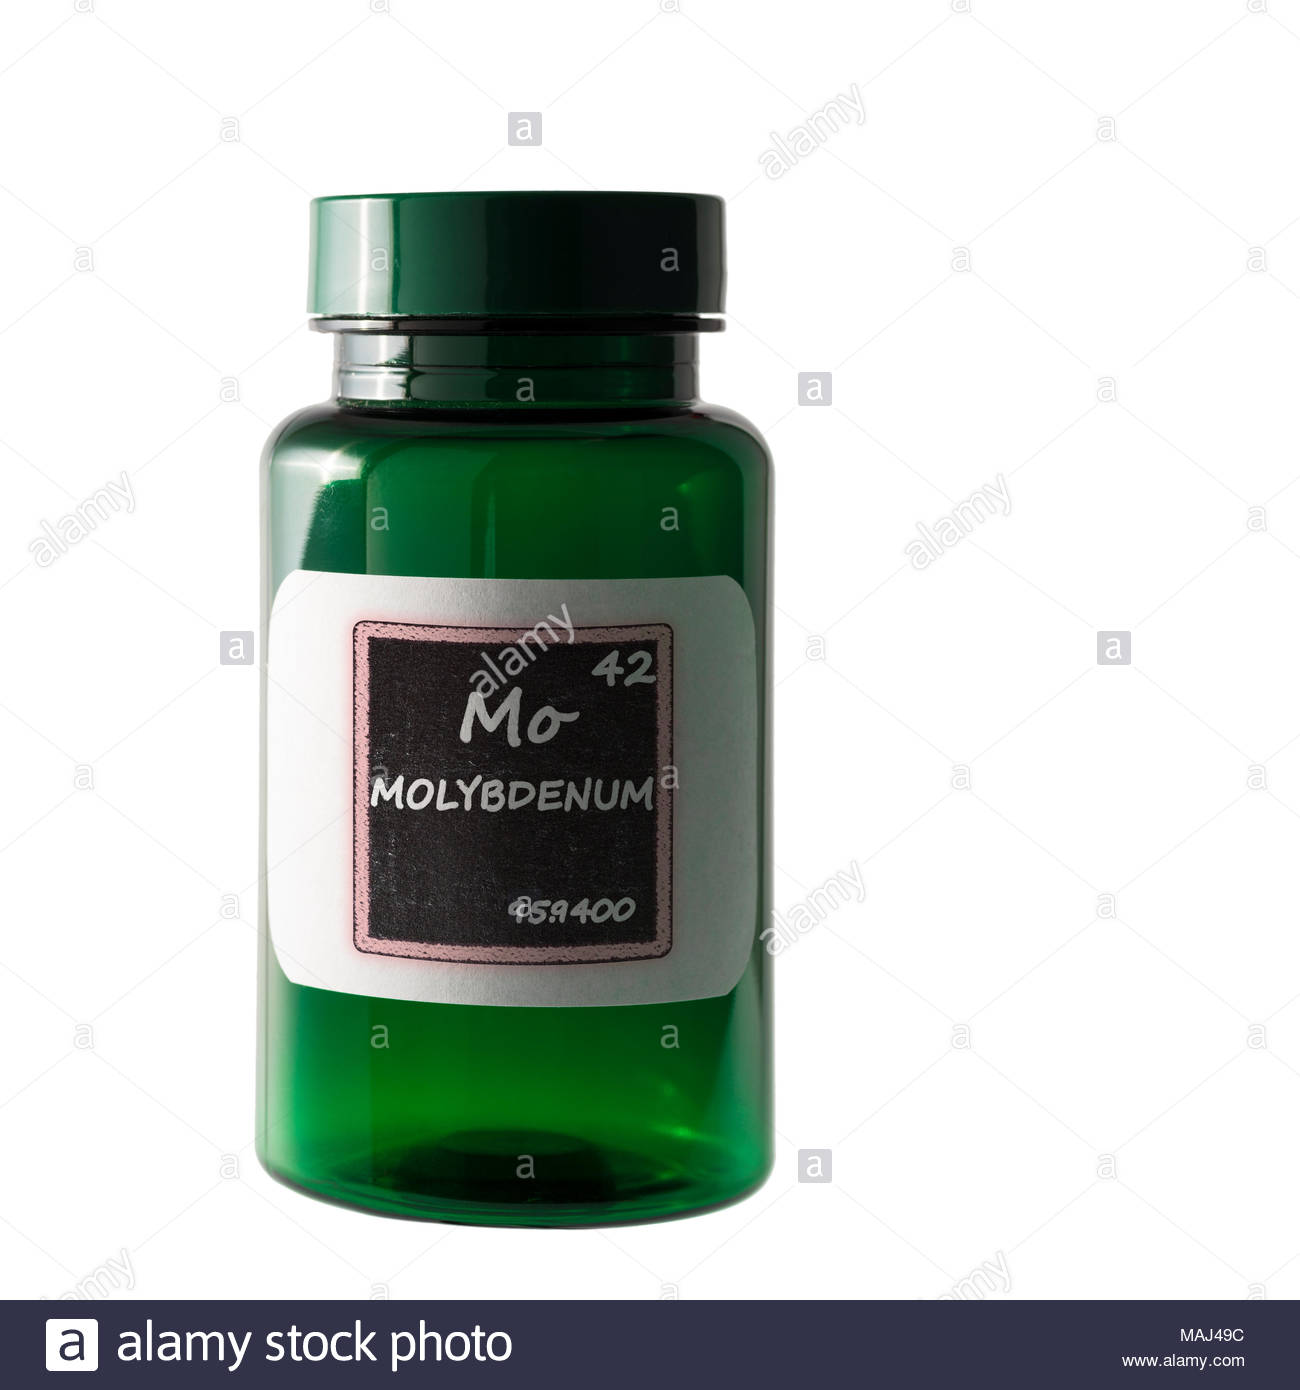 Chemical symbol mo stock photos chemical symbol mo stock images molybdenum periodic table details shown on bottle label stock image urtaz Image collections